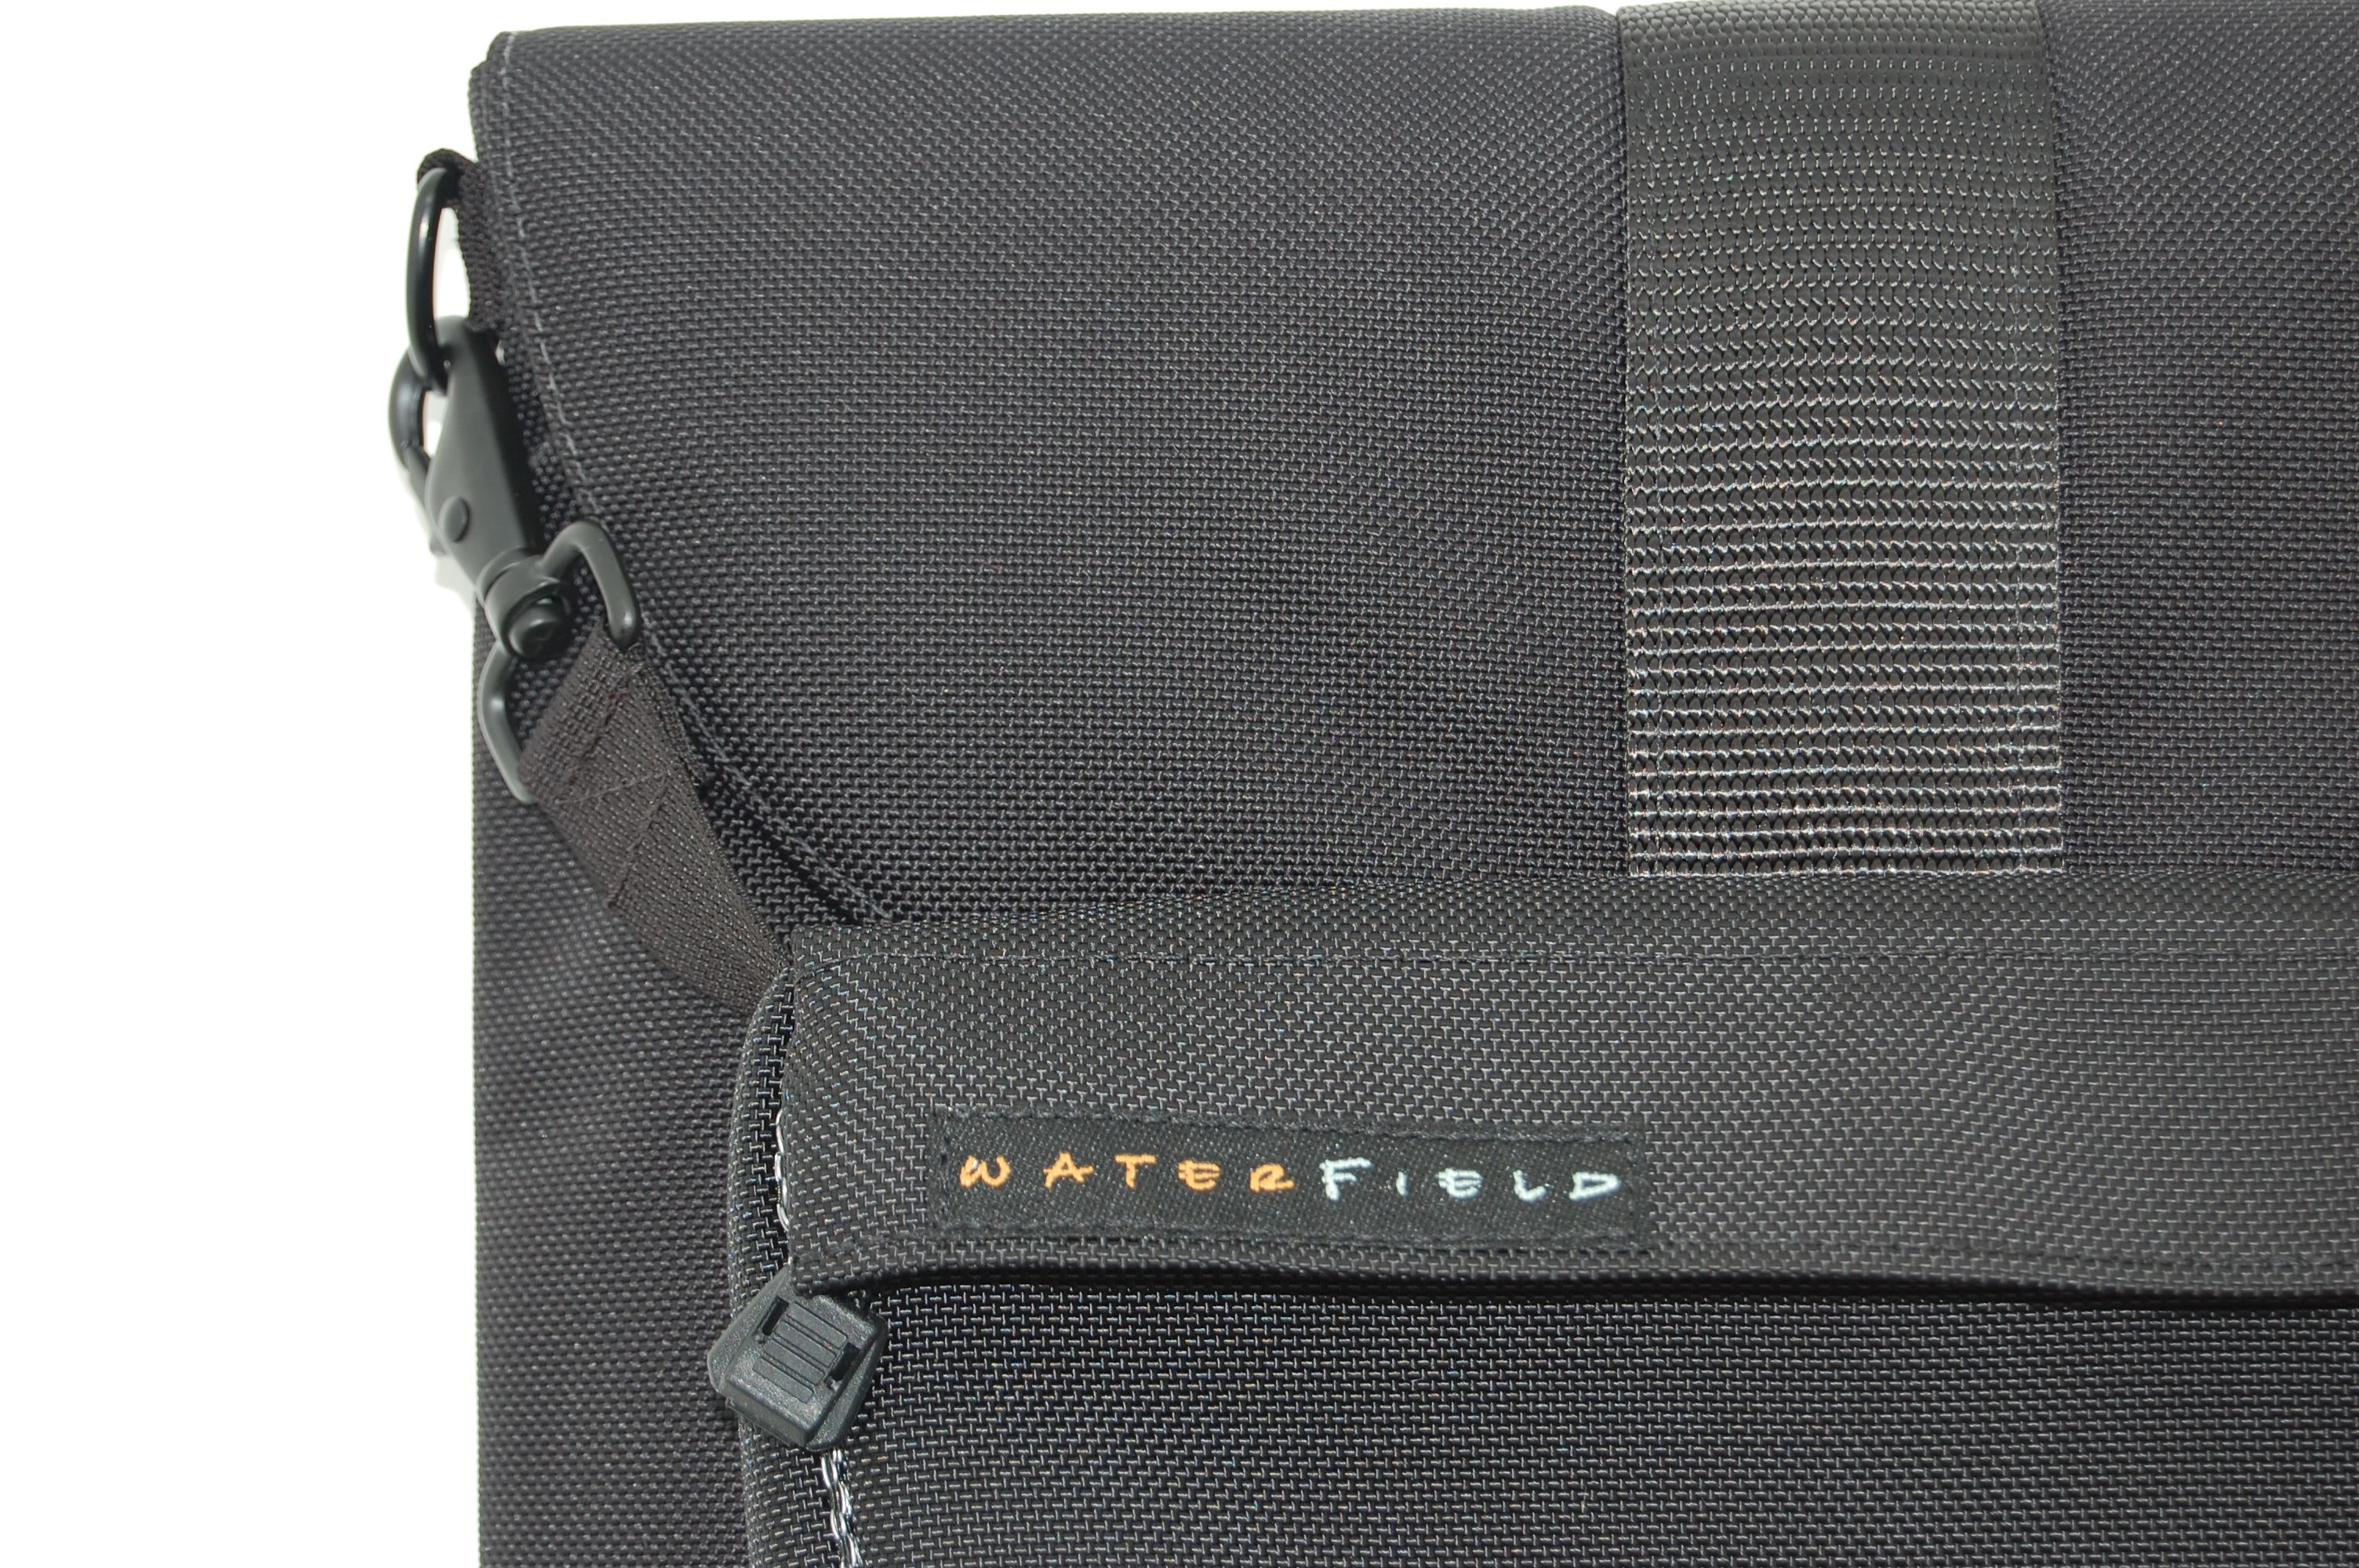 b_0_0_0_00_images_stories_bags_WaterfieldSleevecase_DSC_0756.JPG